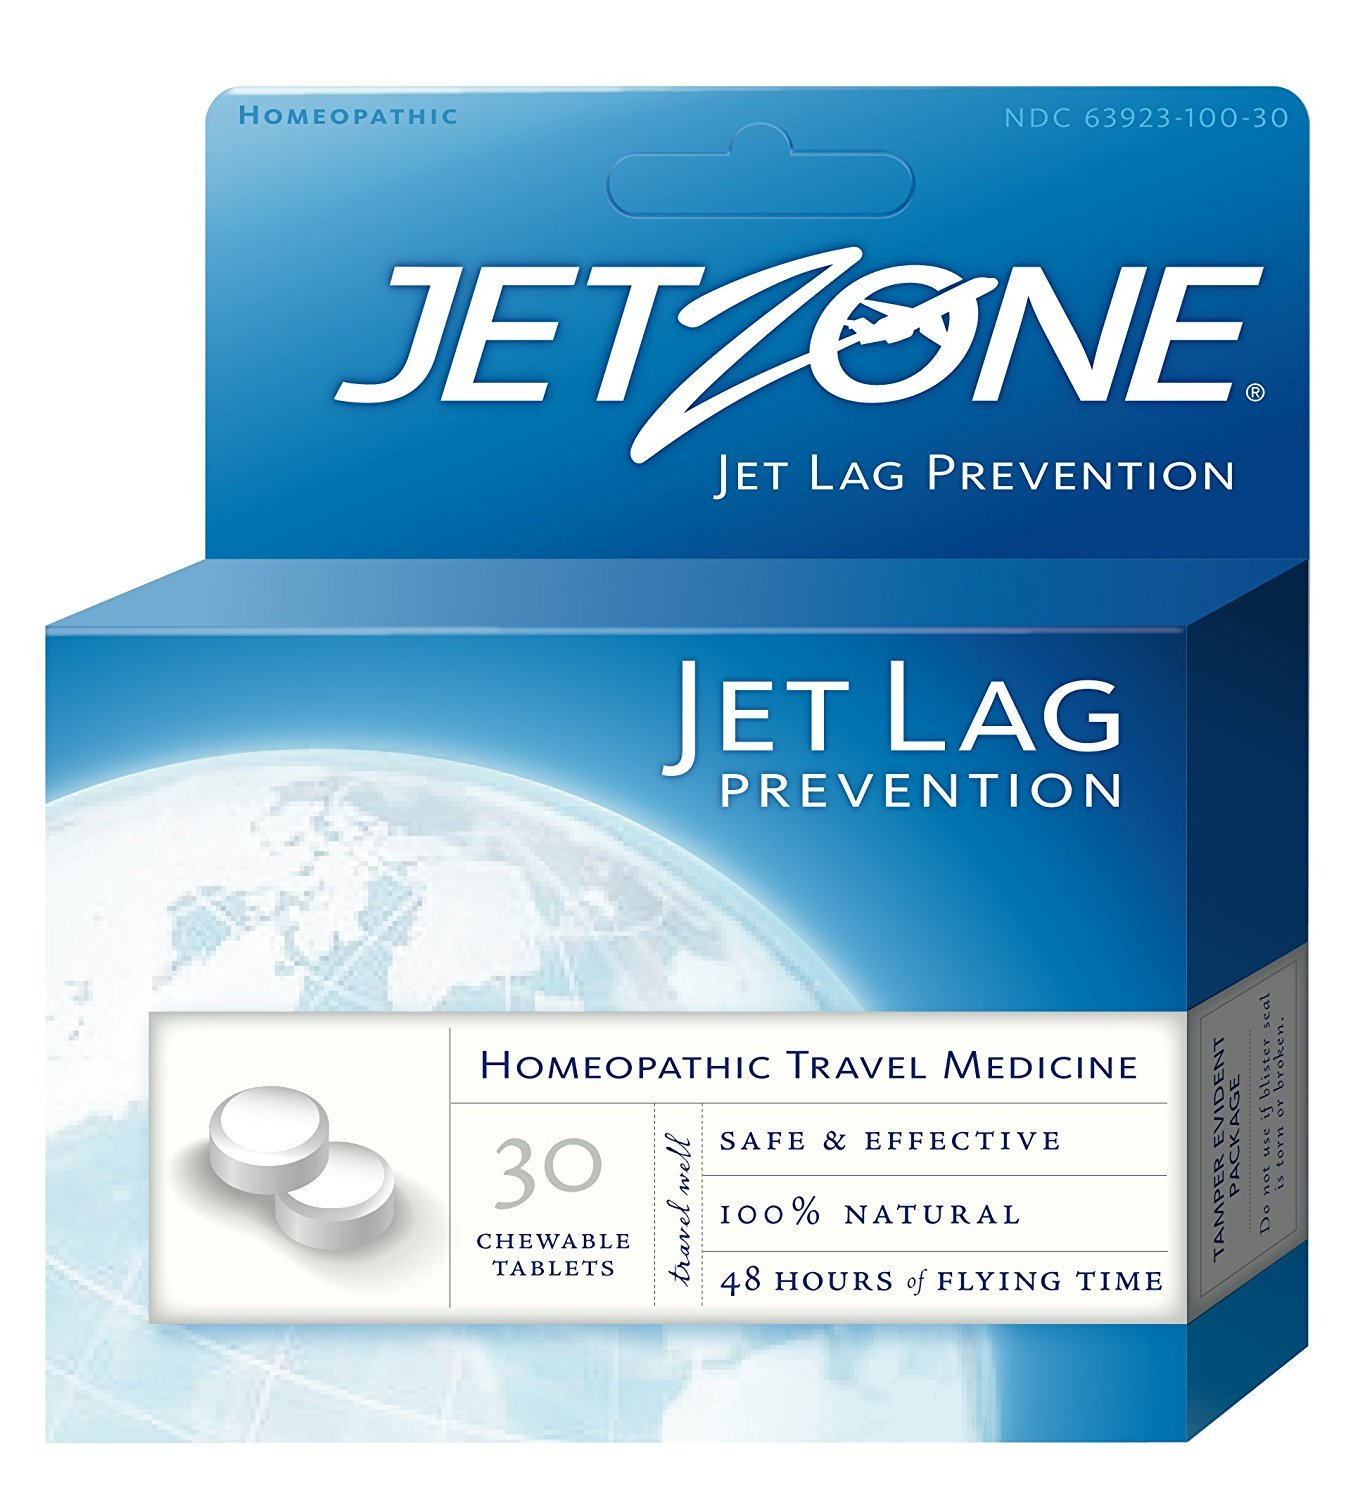 Global Source, JetZone, Jet Lag Prevention, 30 Chewable Tablets - 2pc